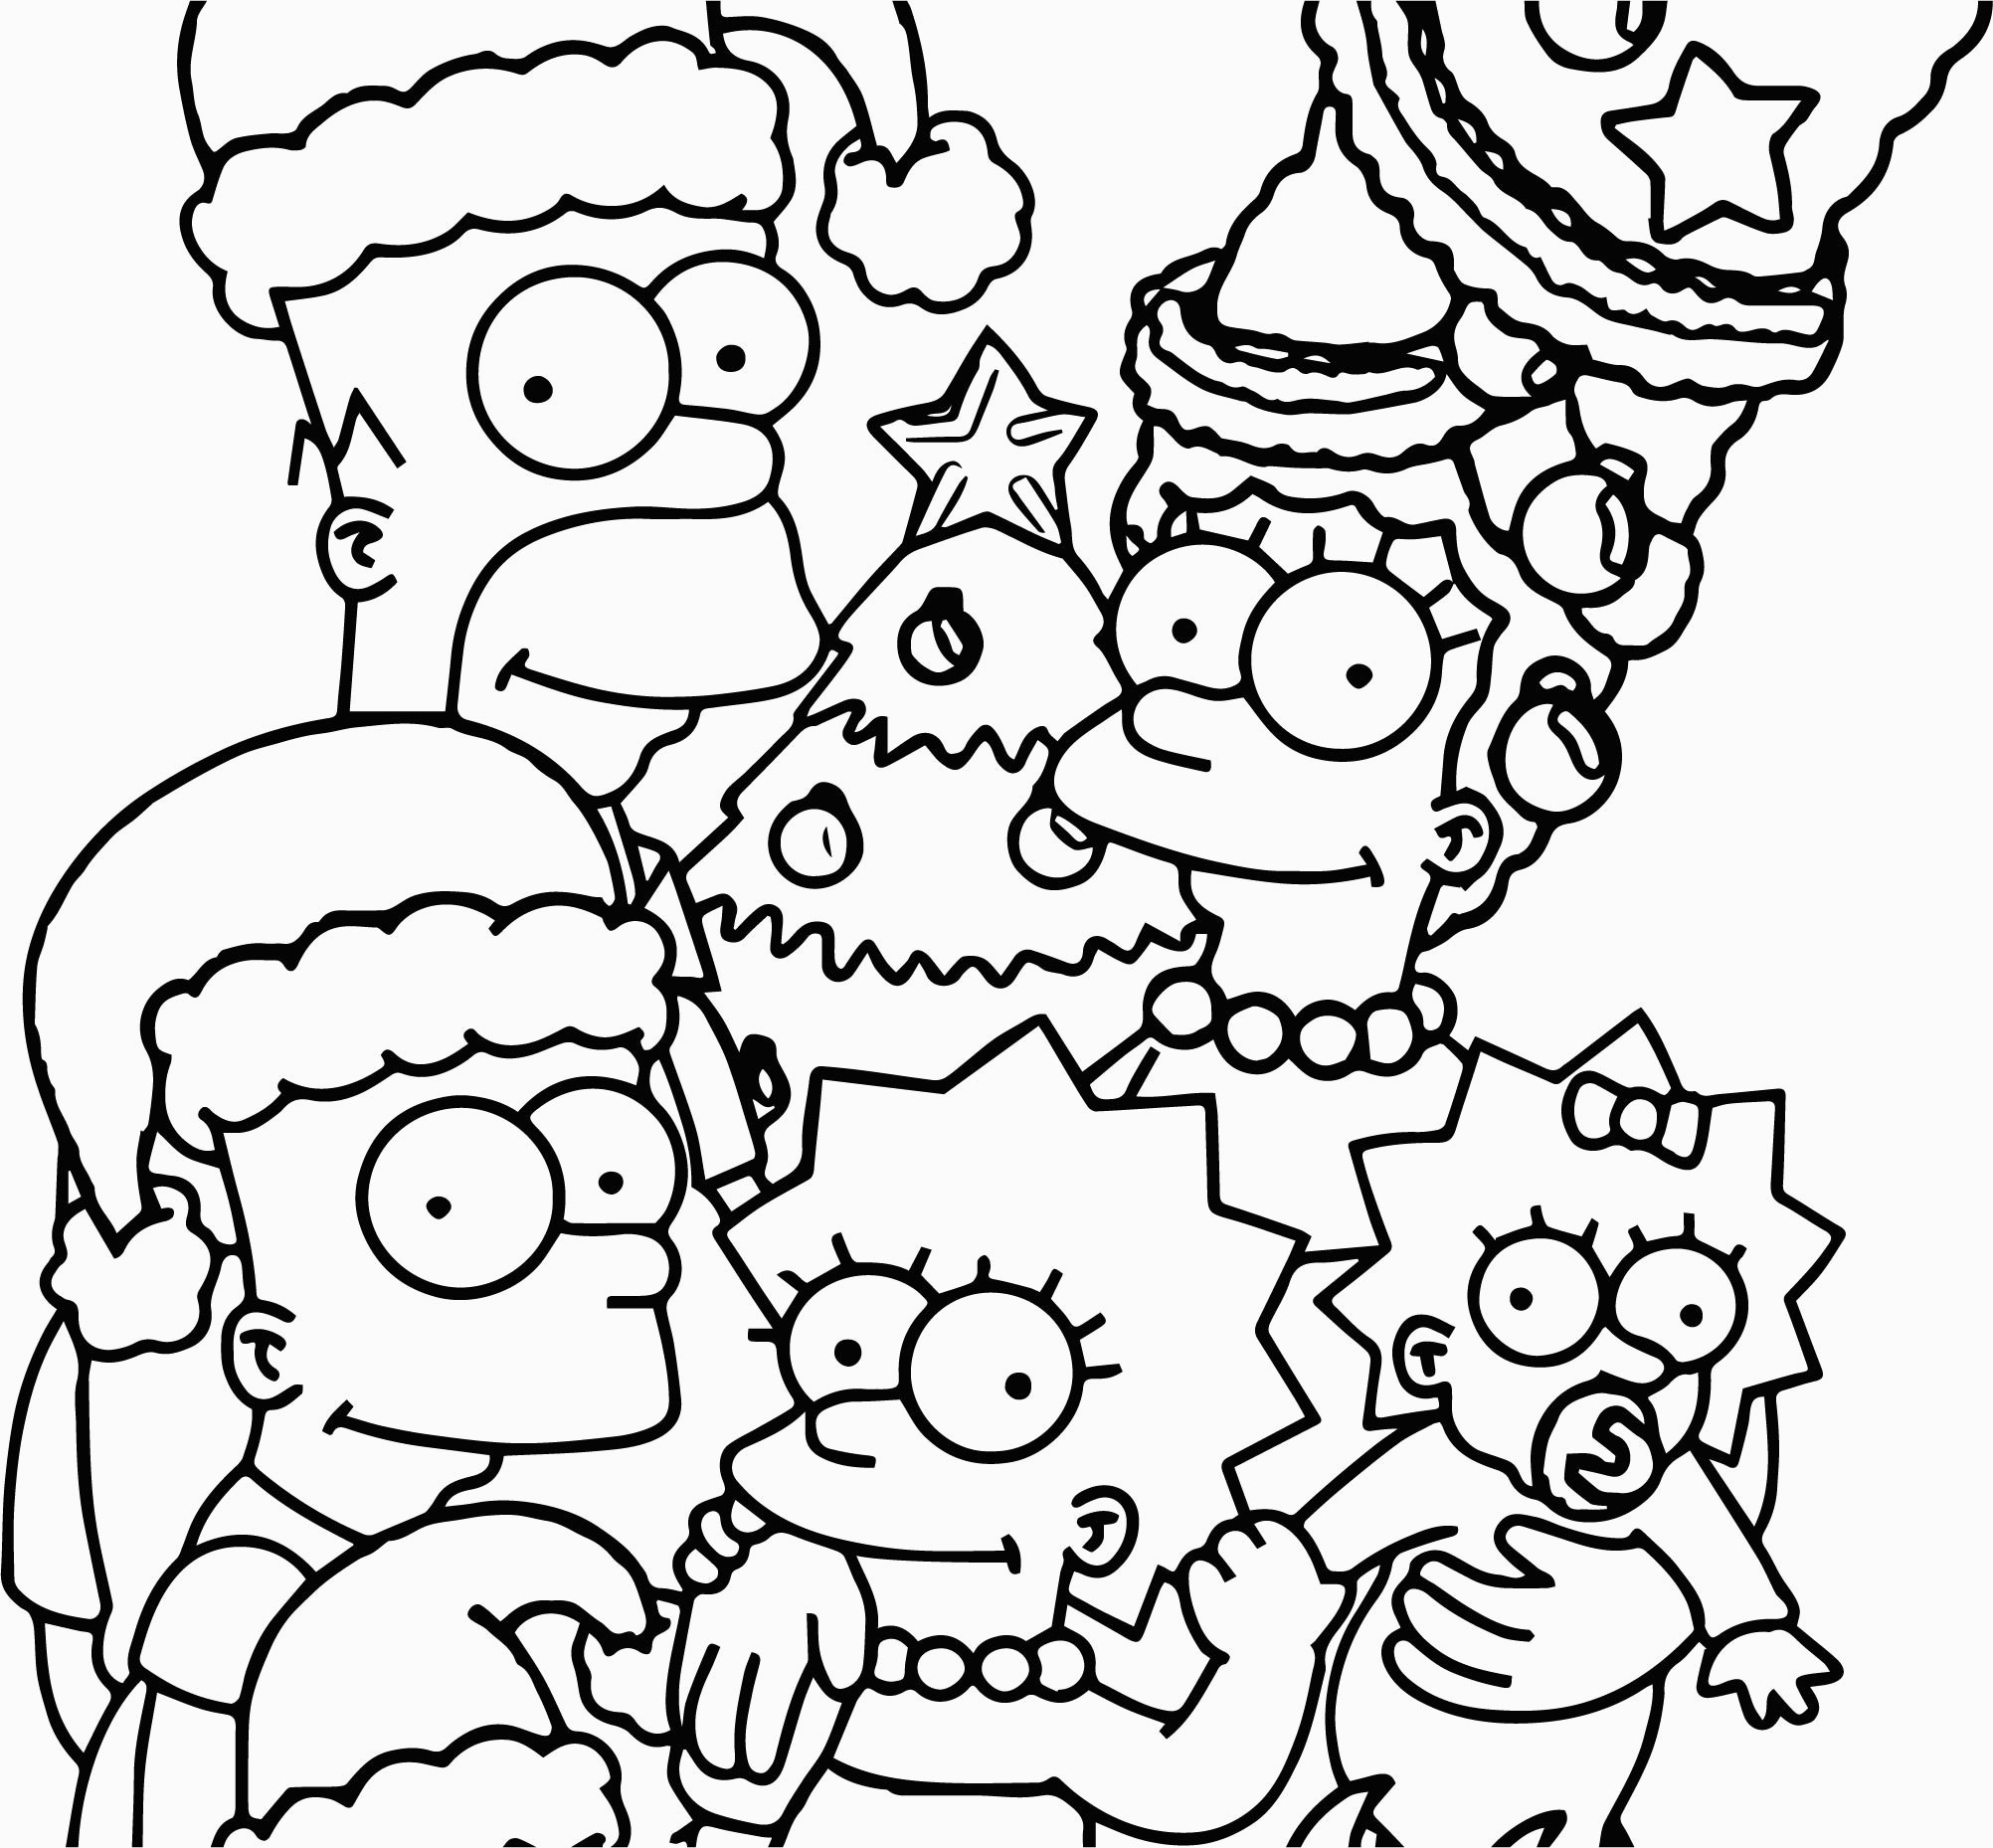 The Simpsons Coloring Pages The Simpsons Wallpaper Christmas Coloring Page For The Simpsons